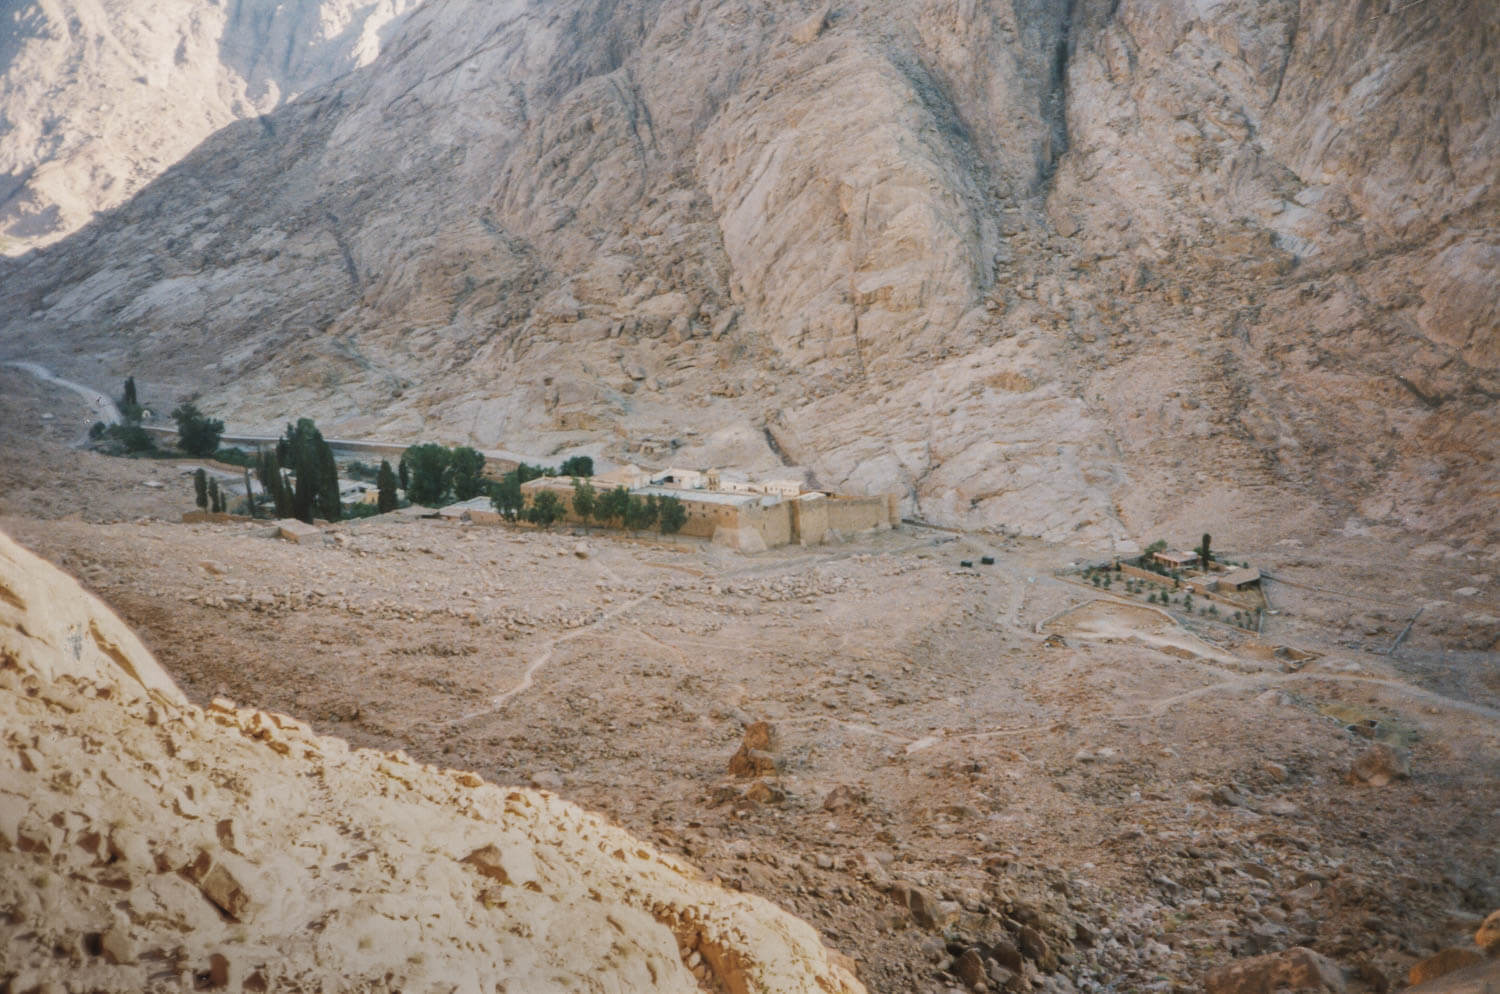 St. Caterina klostret ved Mount Sinai